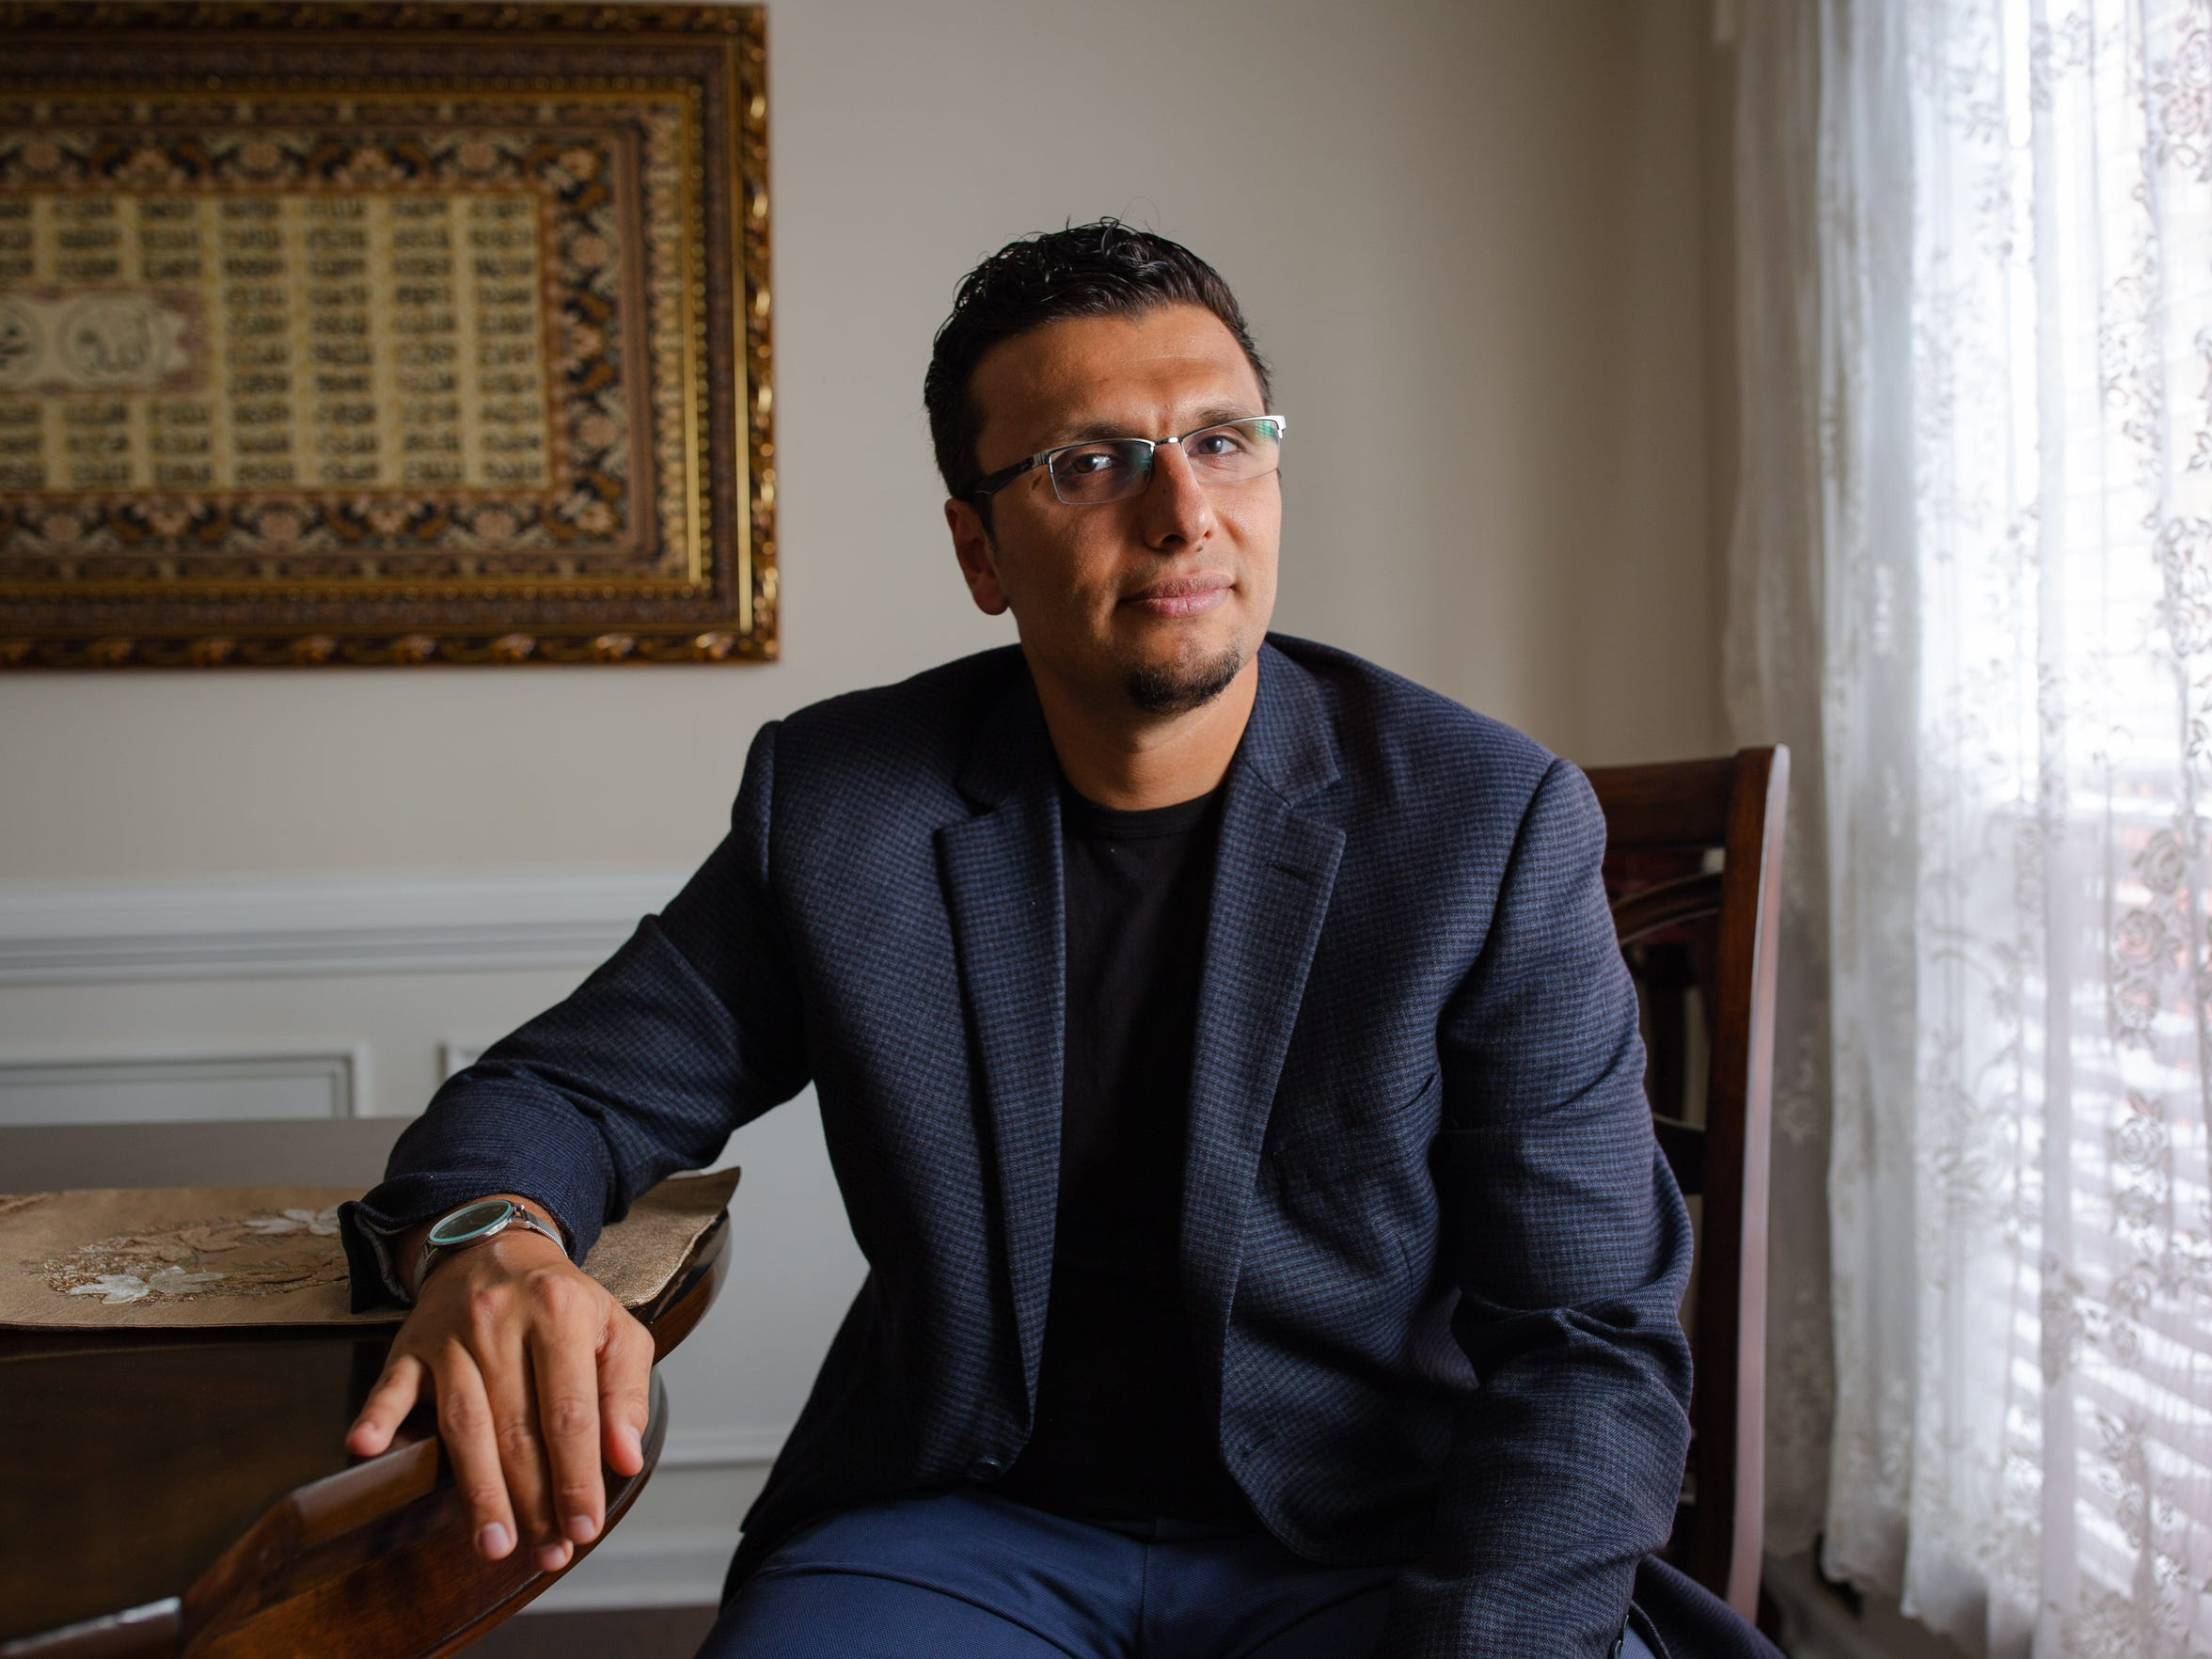 Heval Kelli at his home in Atlanta. The cardiologist, a Syrian Kurd whose family was granted asylum in the United States in 2001, offers himself as an ambassador for Islam and for refugees.